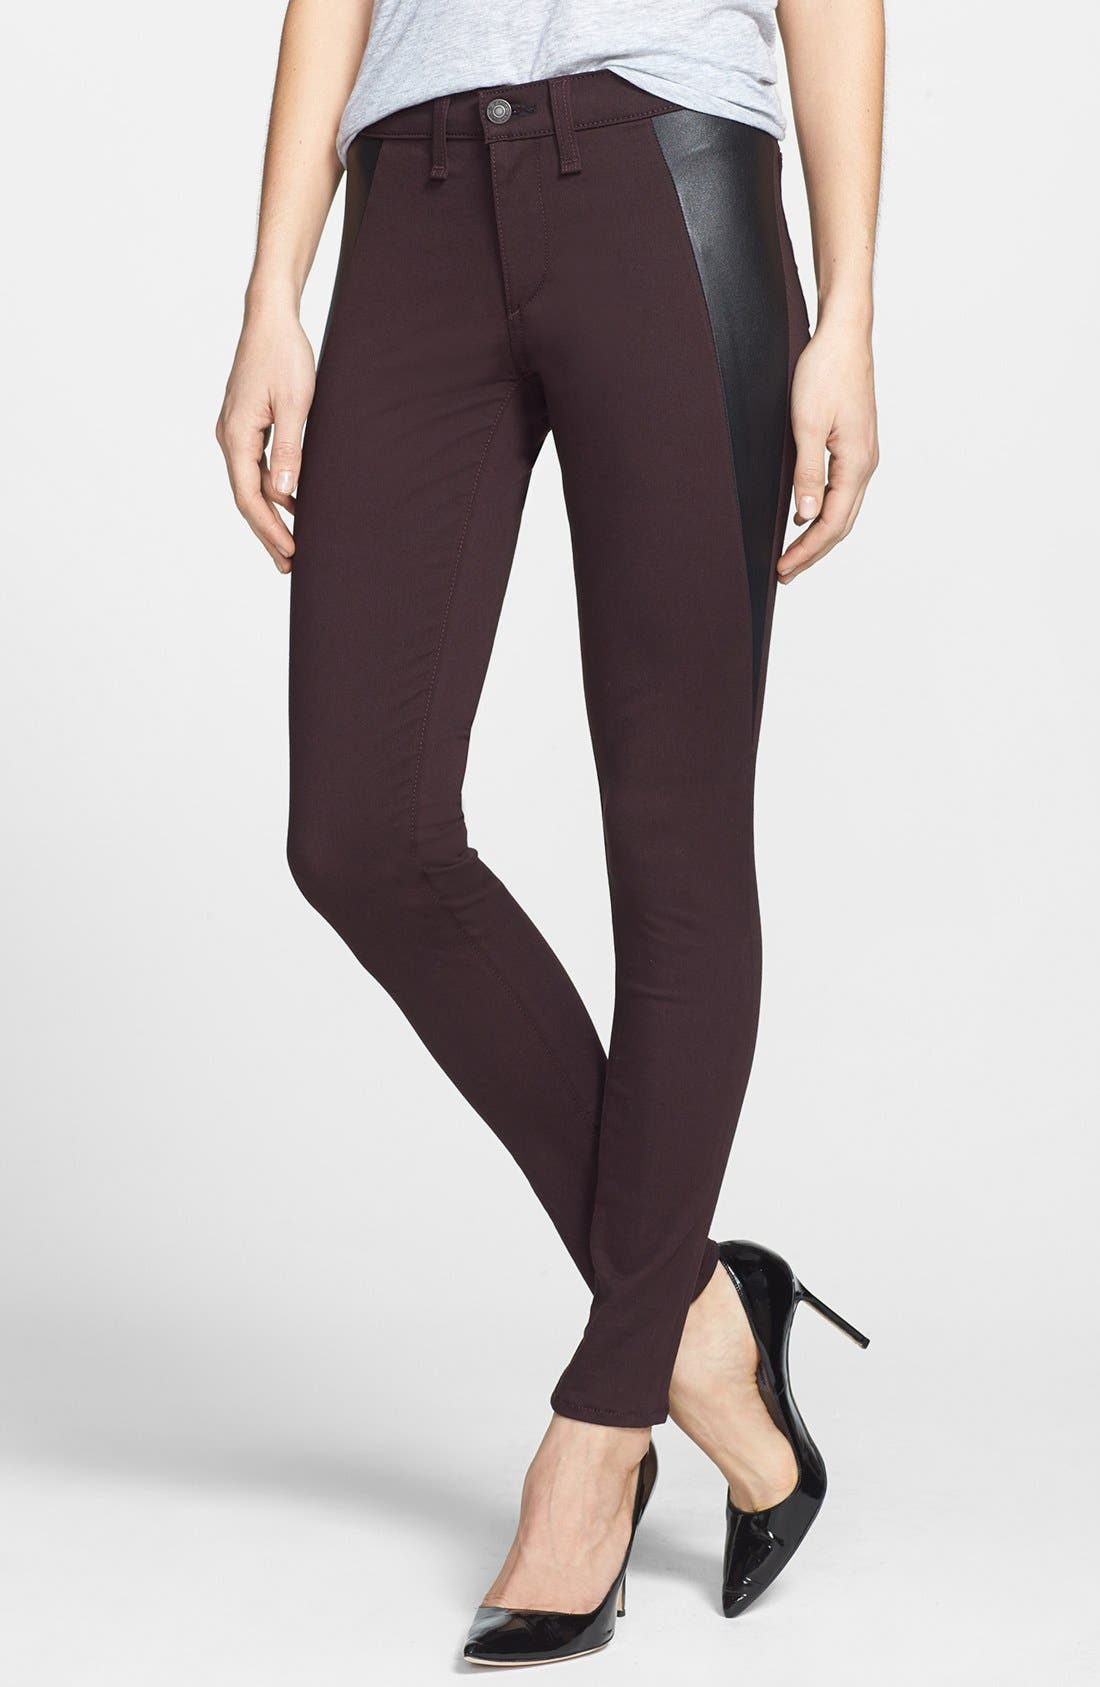 Main Image - rag & bone/JEAN 'Pop' Leather Inset Skinny Jeans (Wine)